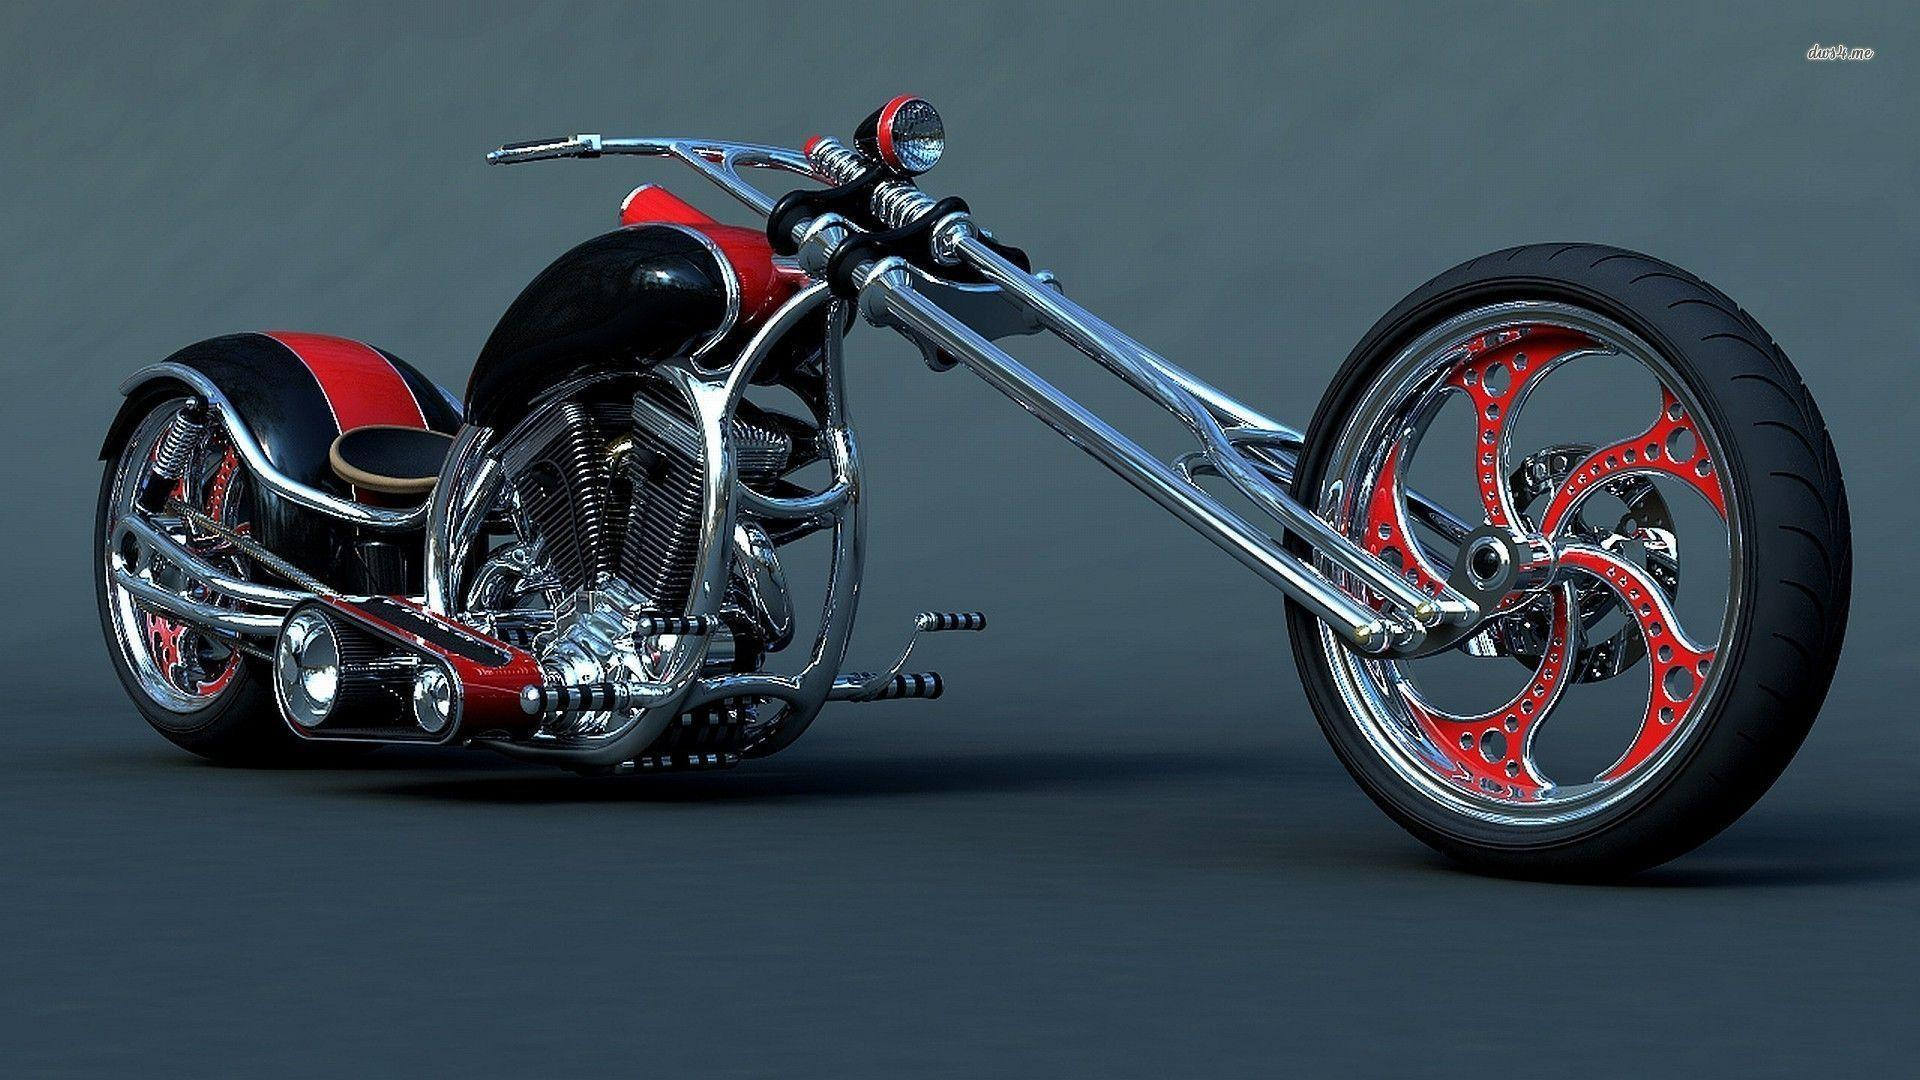 Custom Harley Davidson Chopper Wallpaper  Motorcycle Wallpapers